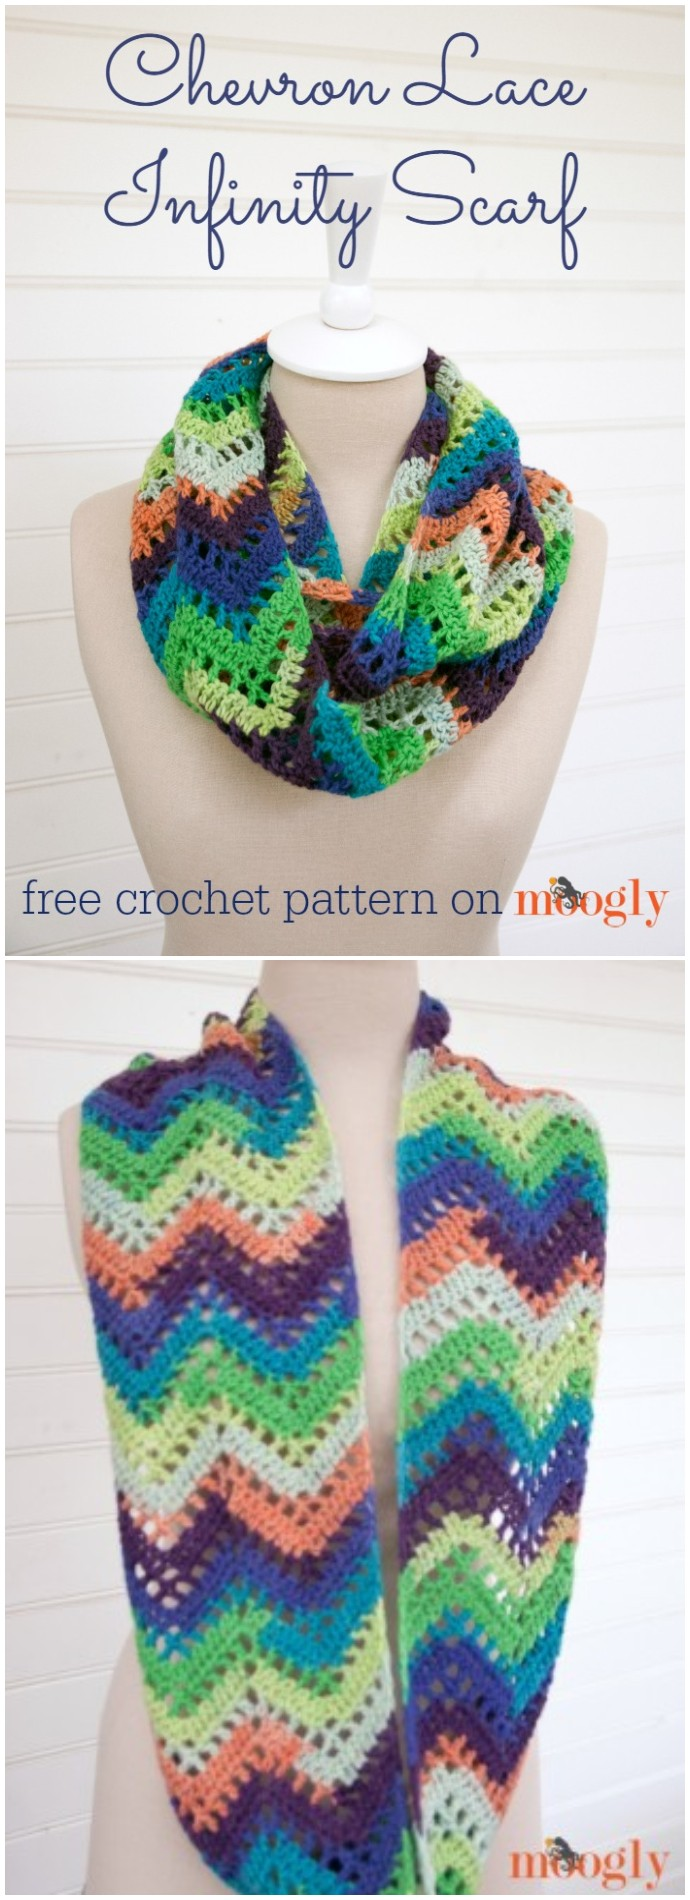 Free Crochet Chevron Lace Infinity Scarf